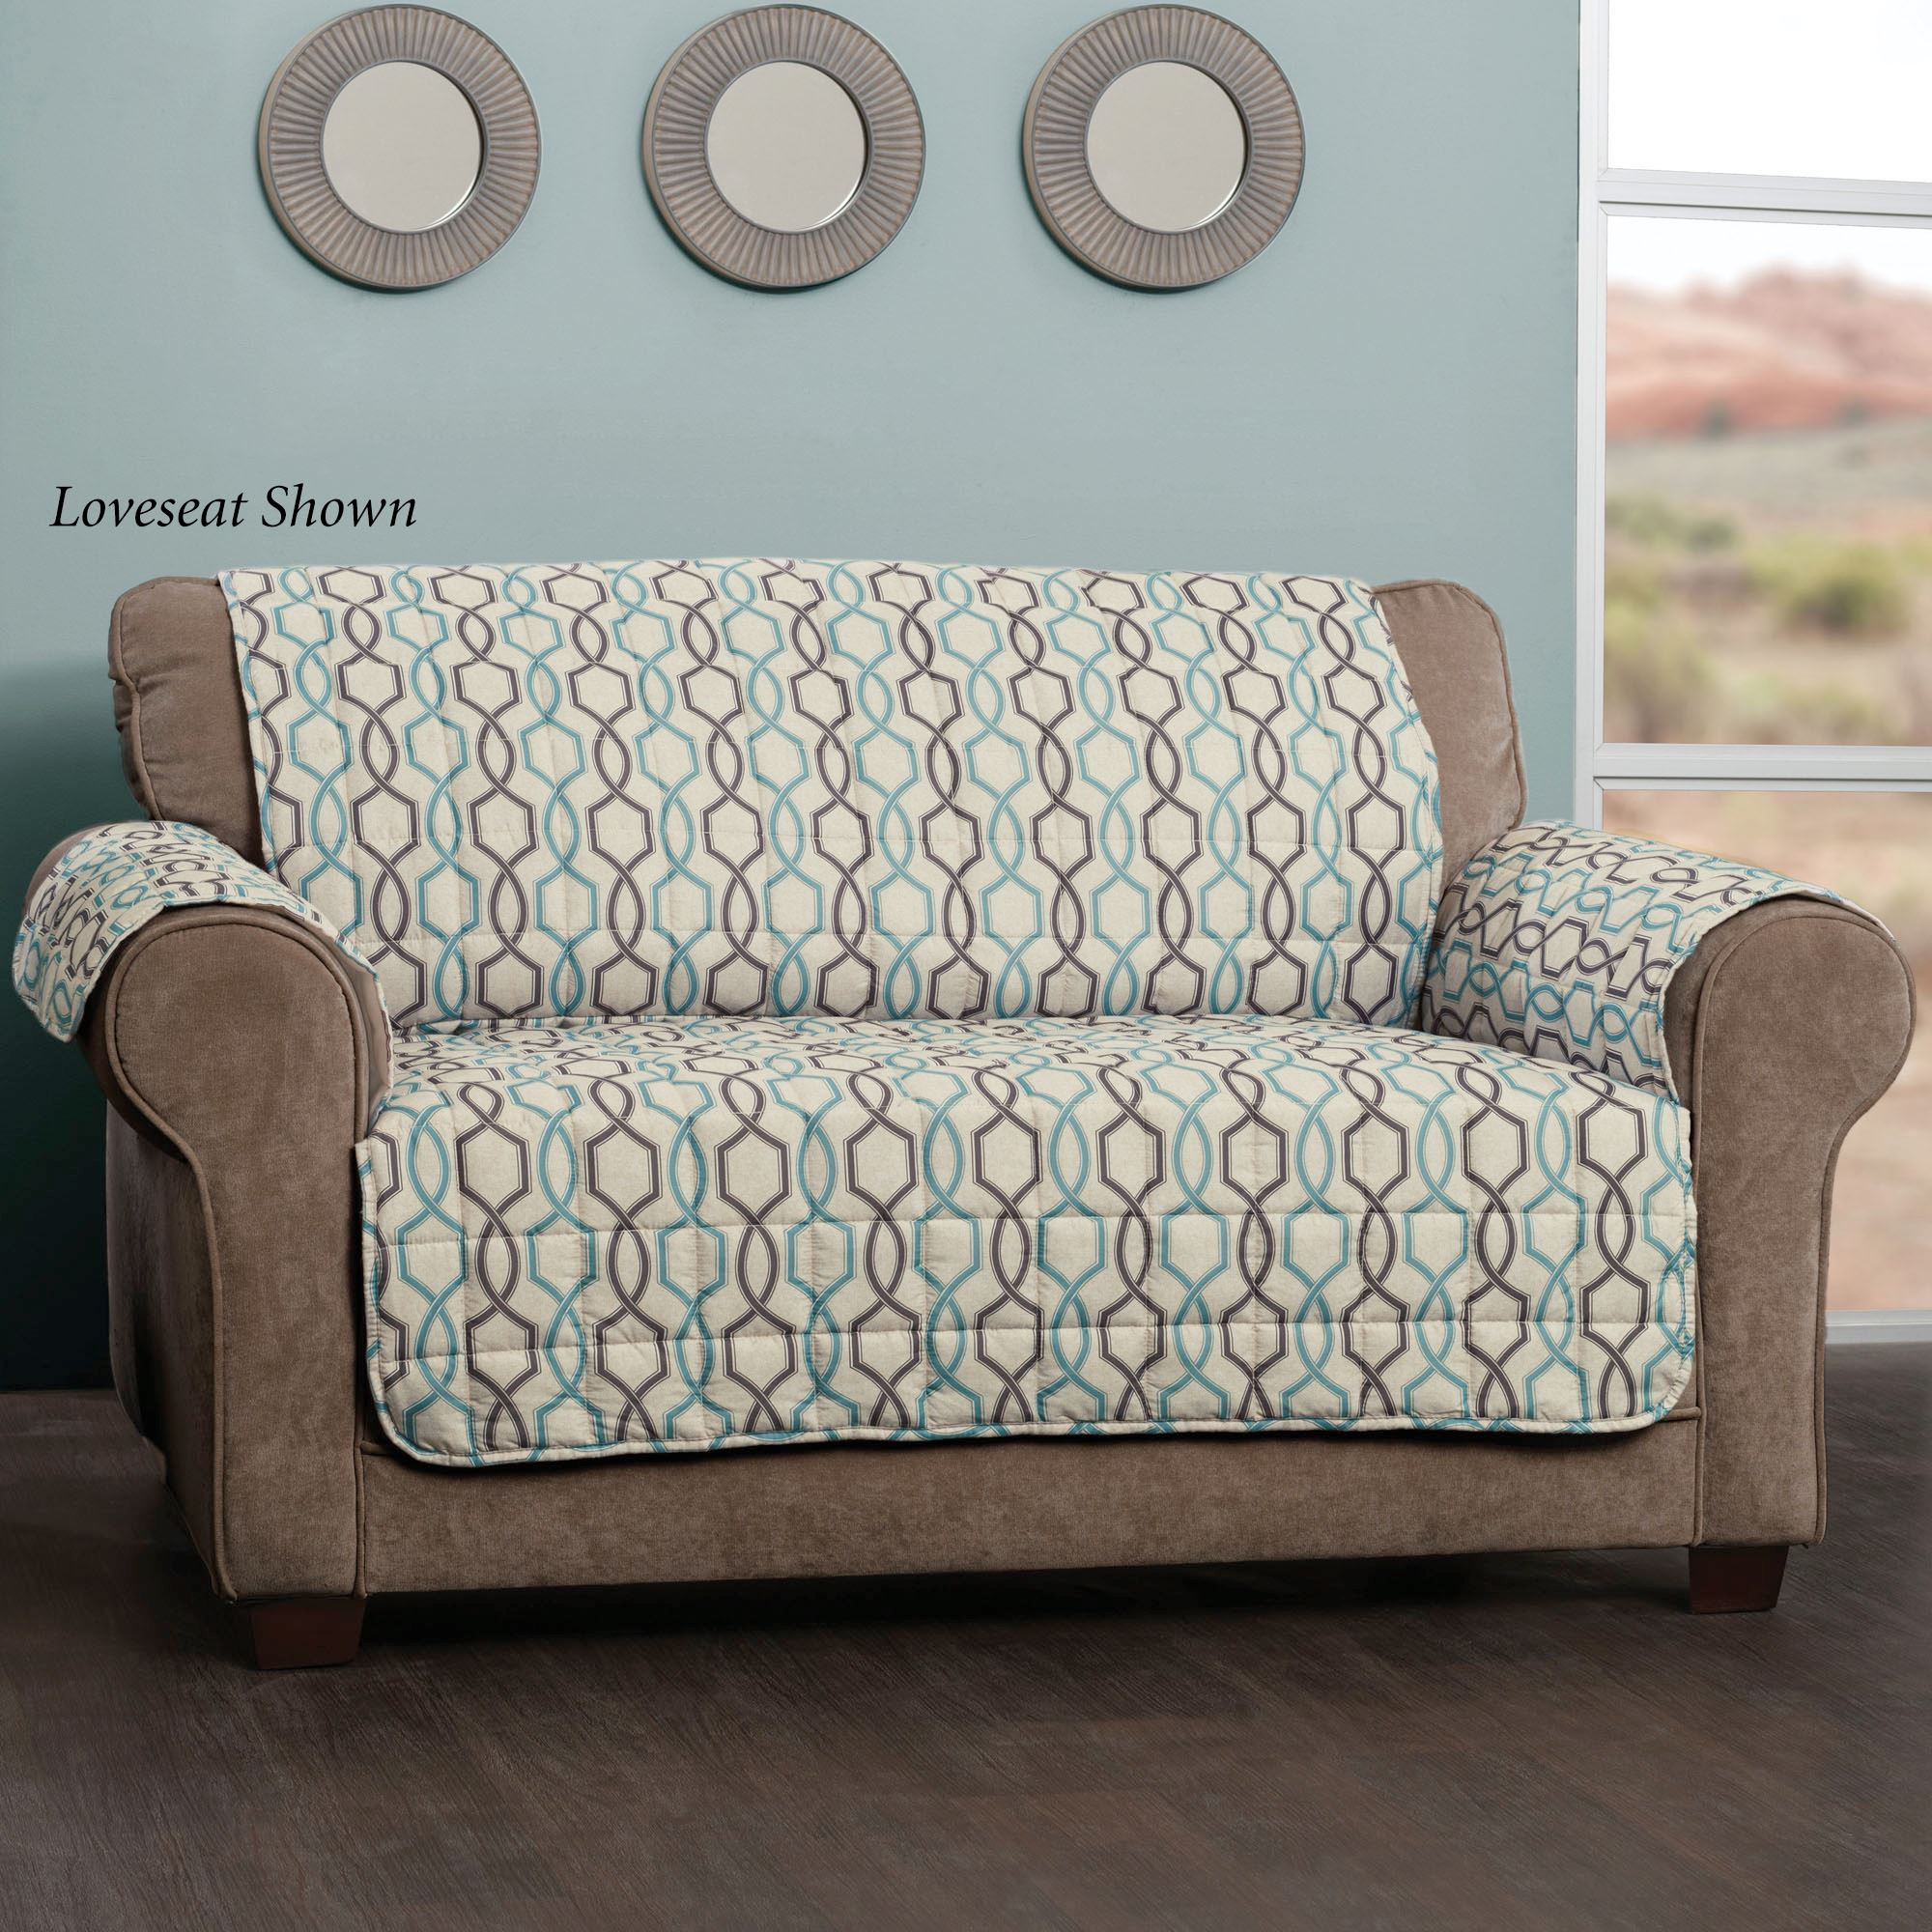 loveseat of contemporary for bazar a home style coco fimsozp patterned de